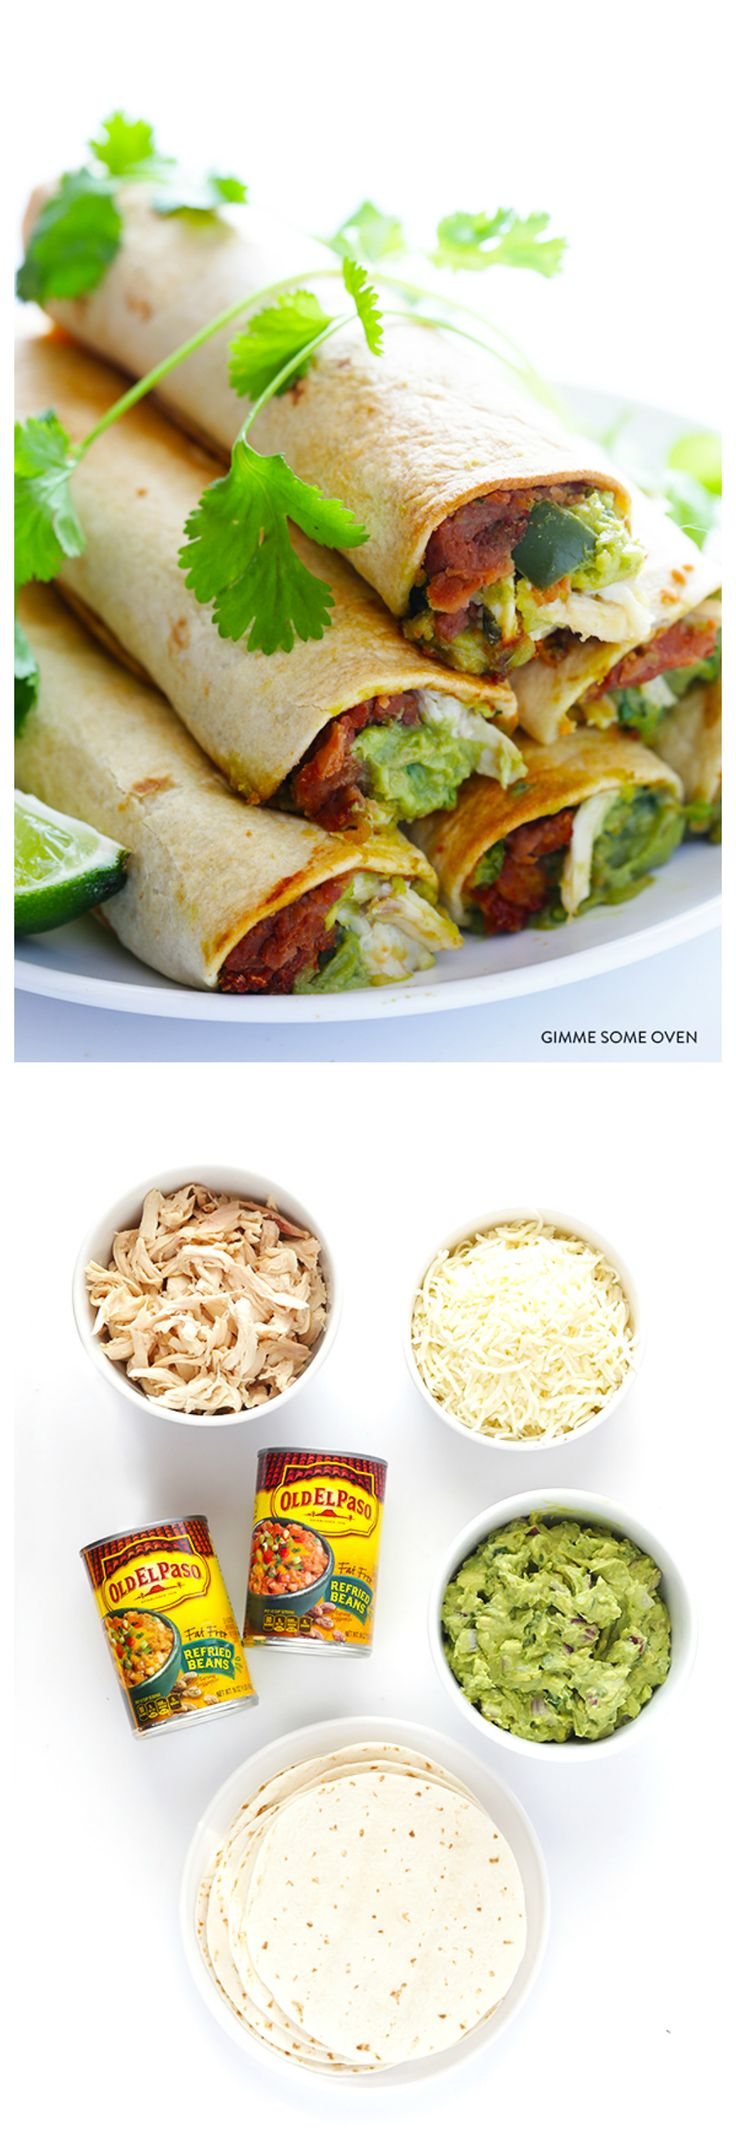 5-Ingredient Chicken Guacamole Baked Taquitos -- made easy in the oven, and so delicious!   gimmesomeoven.com